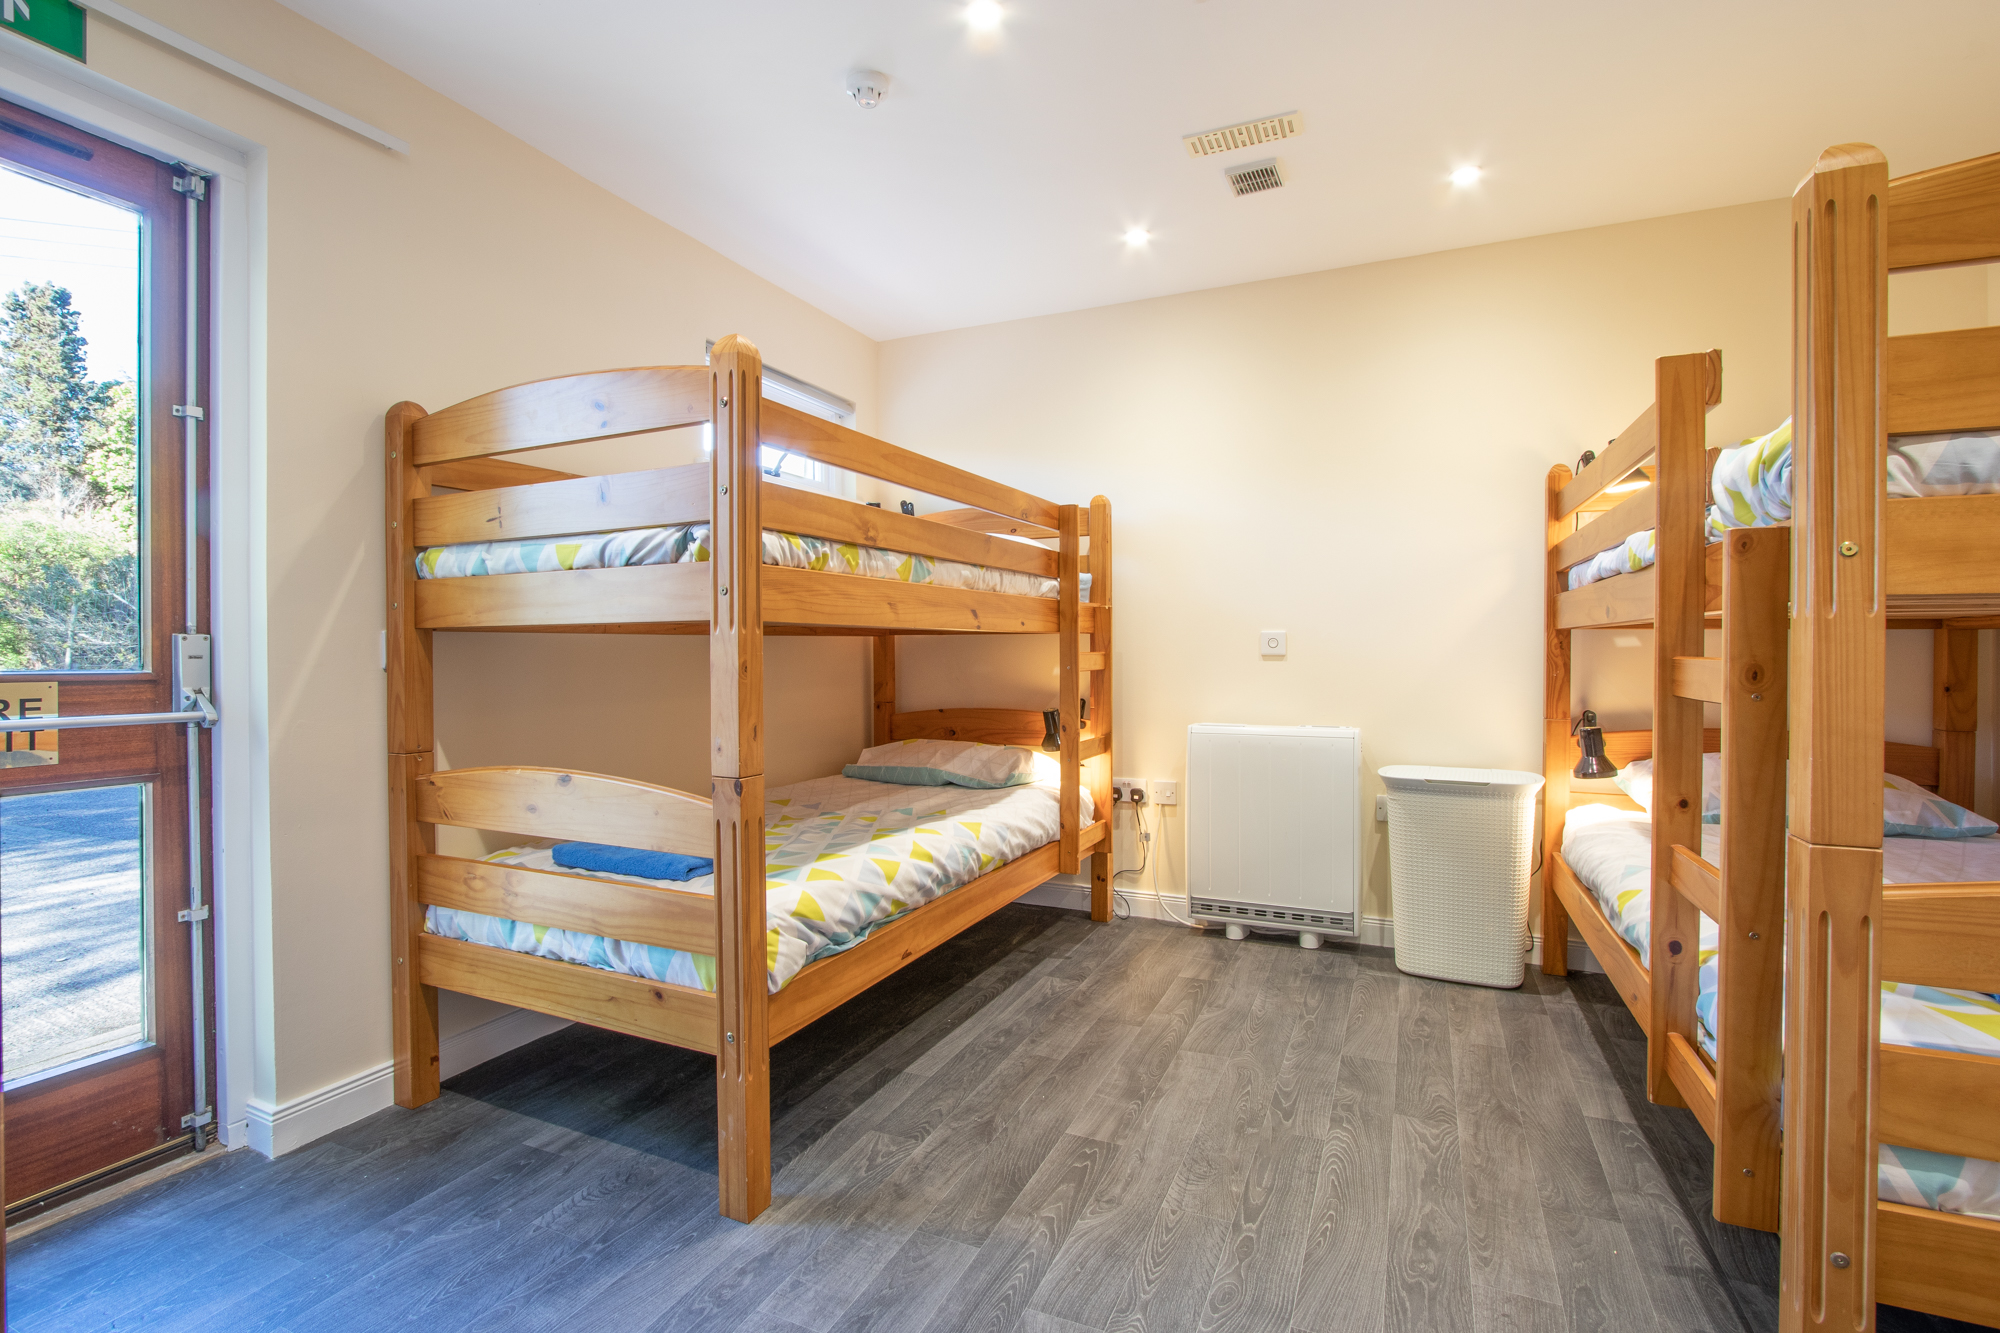 Dervaig Bunk Rooms | Dervaig Hostel